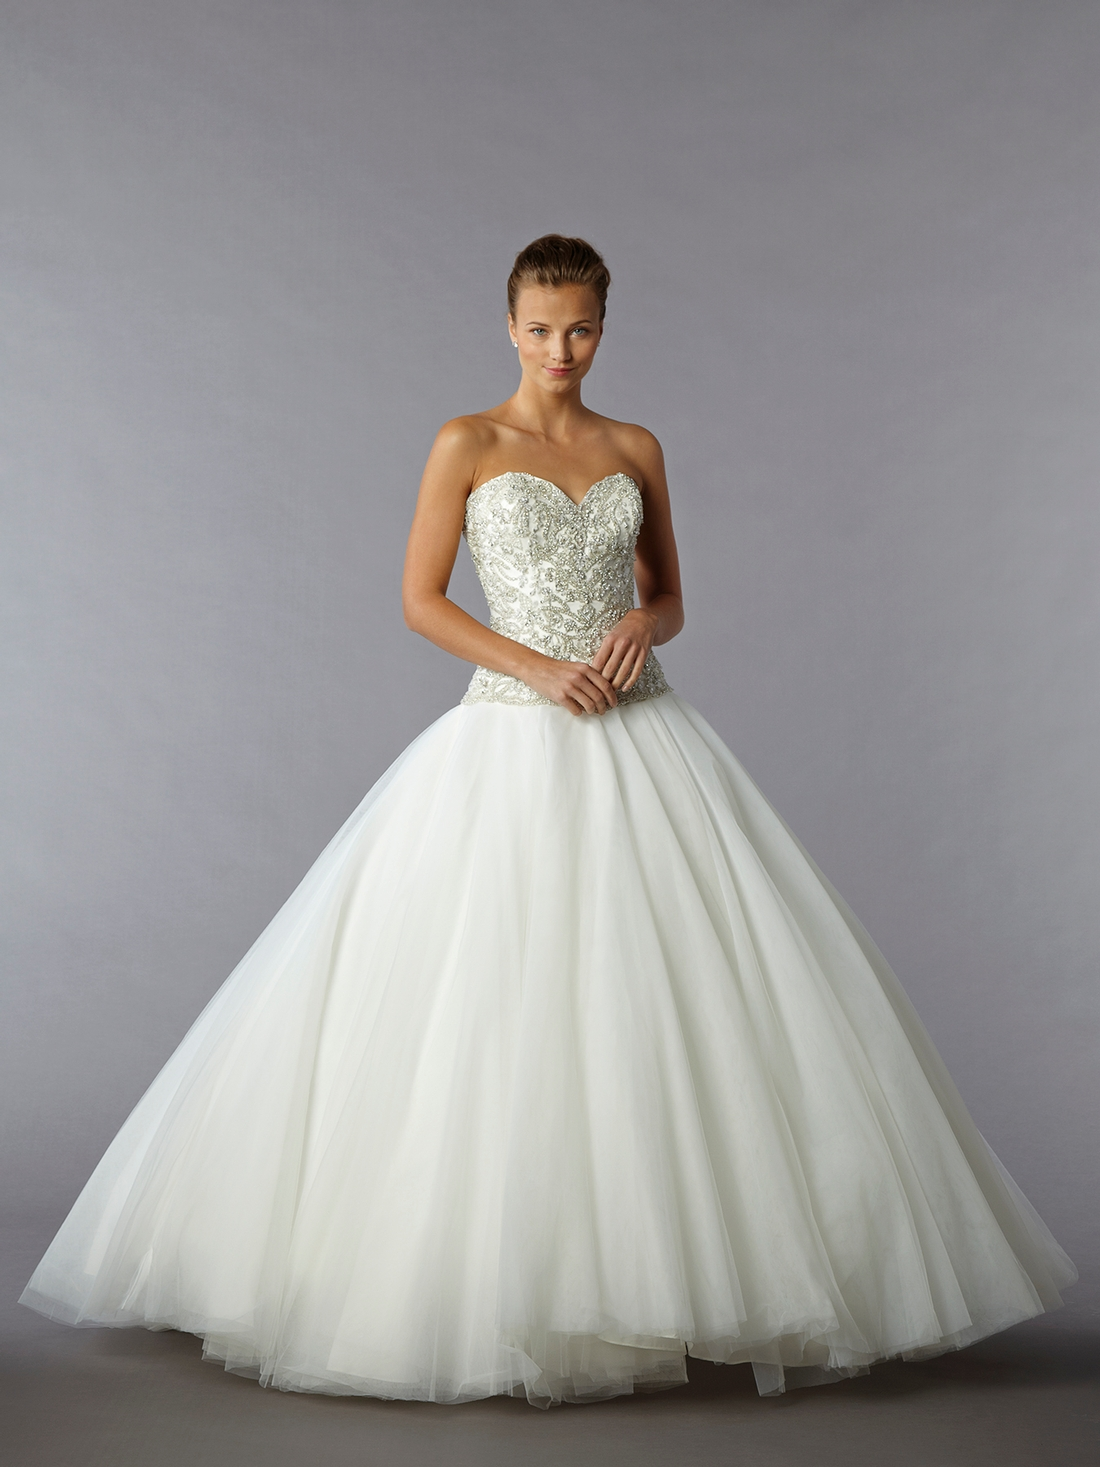 Kleinfeld Wedding Dresses Store For More Ease For You To Find The